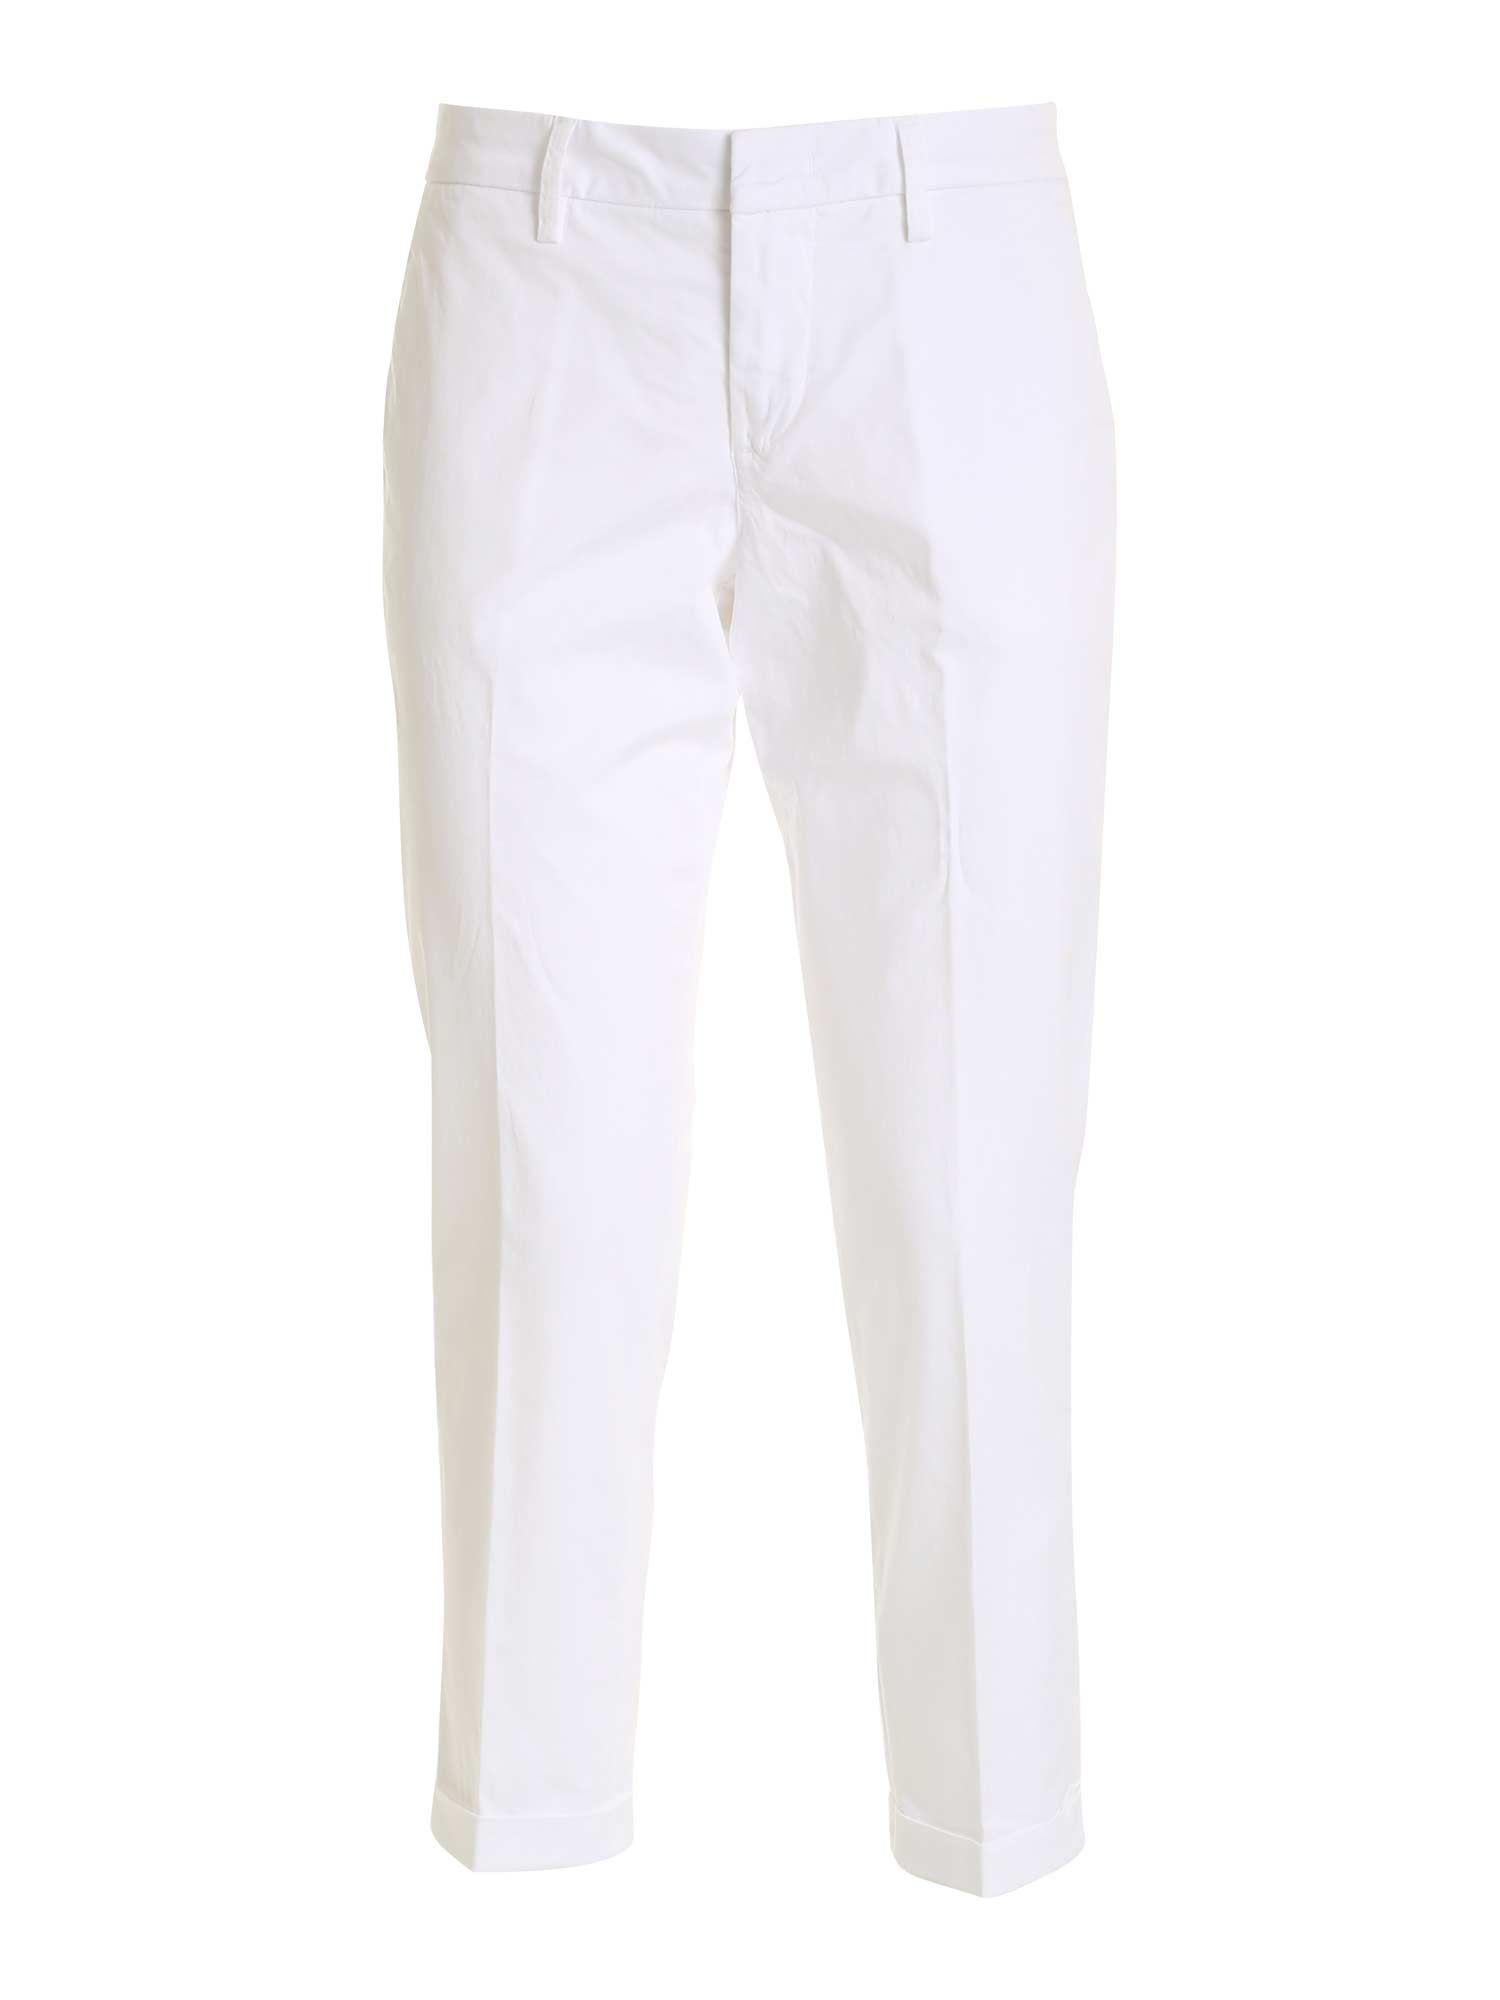 Fay CHINO PANTS IN WHITE